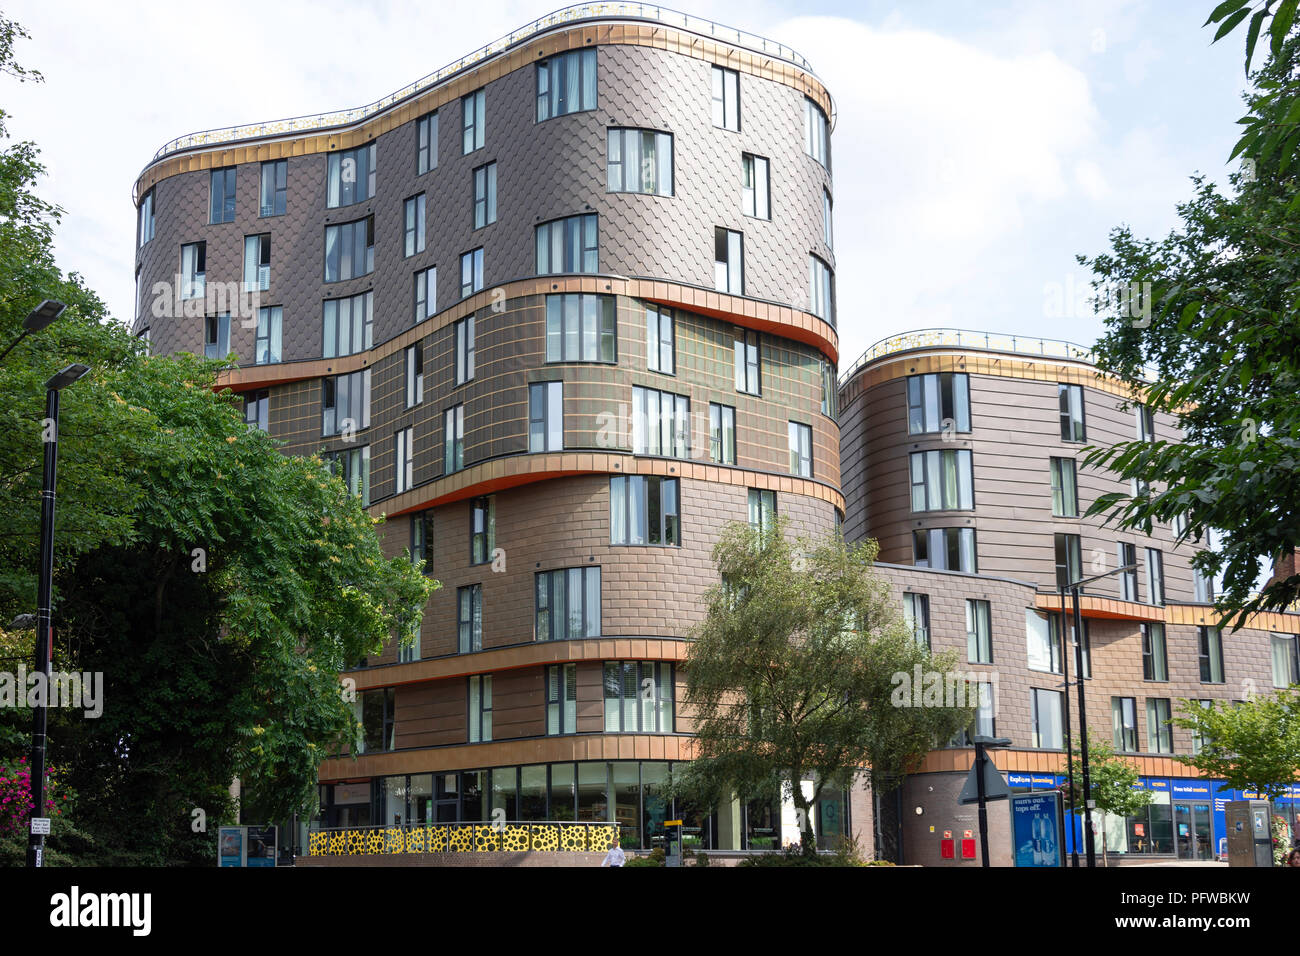 The Fold Apartments, Station Road, Sidcup, London Borough of Bexley, Greater London, England, United Kingdom - Stock Image